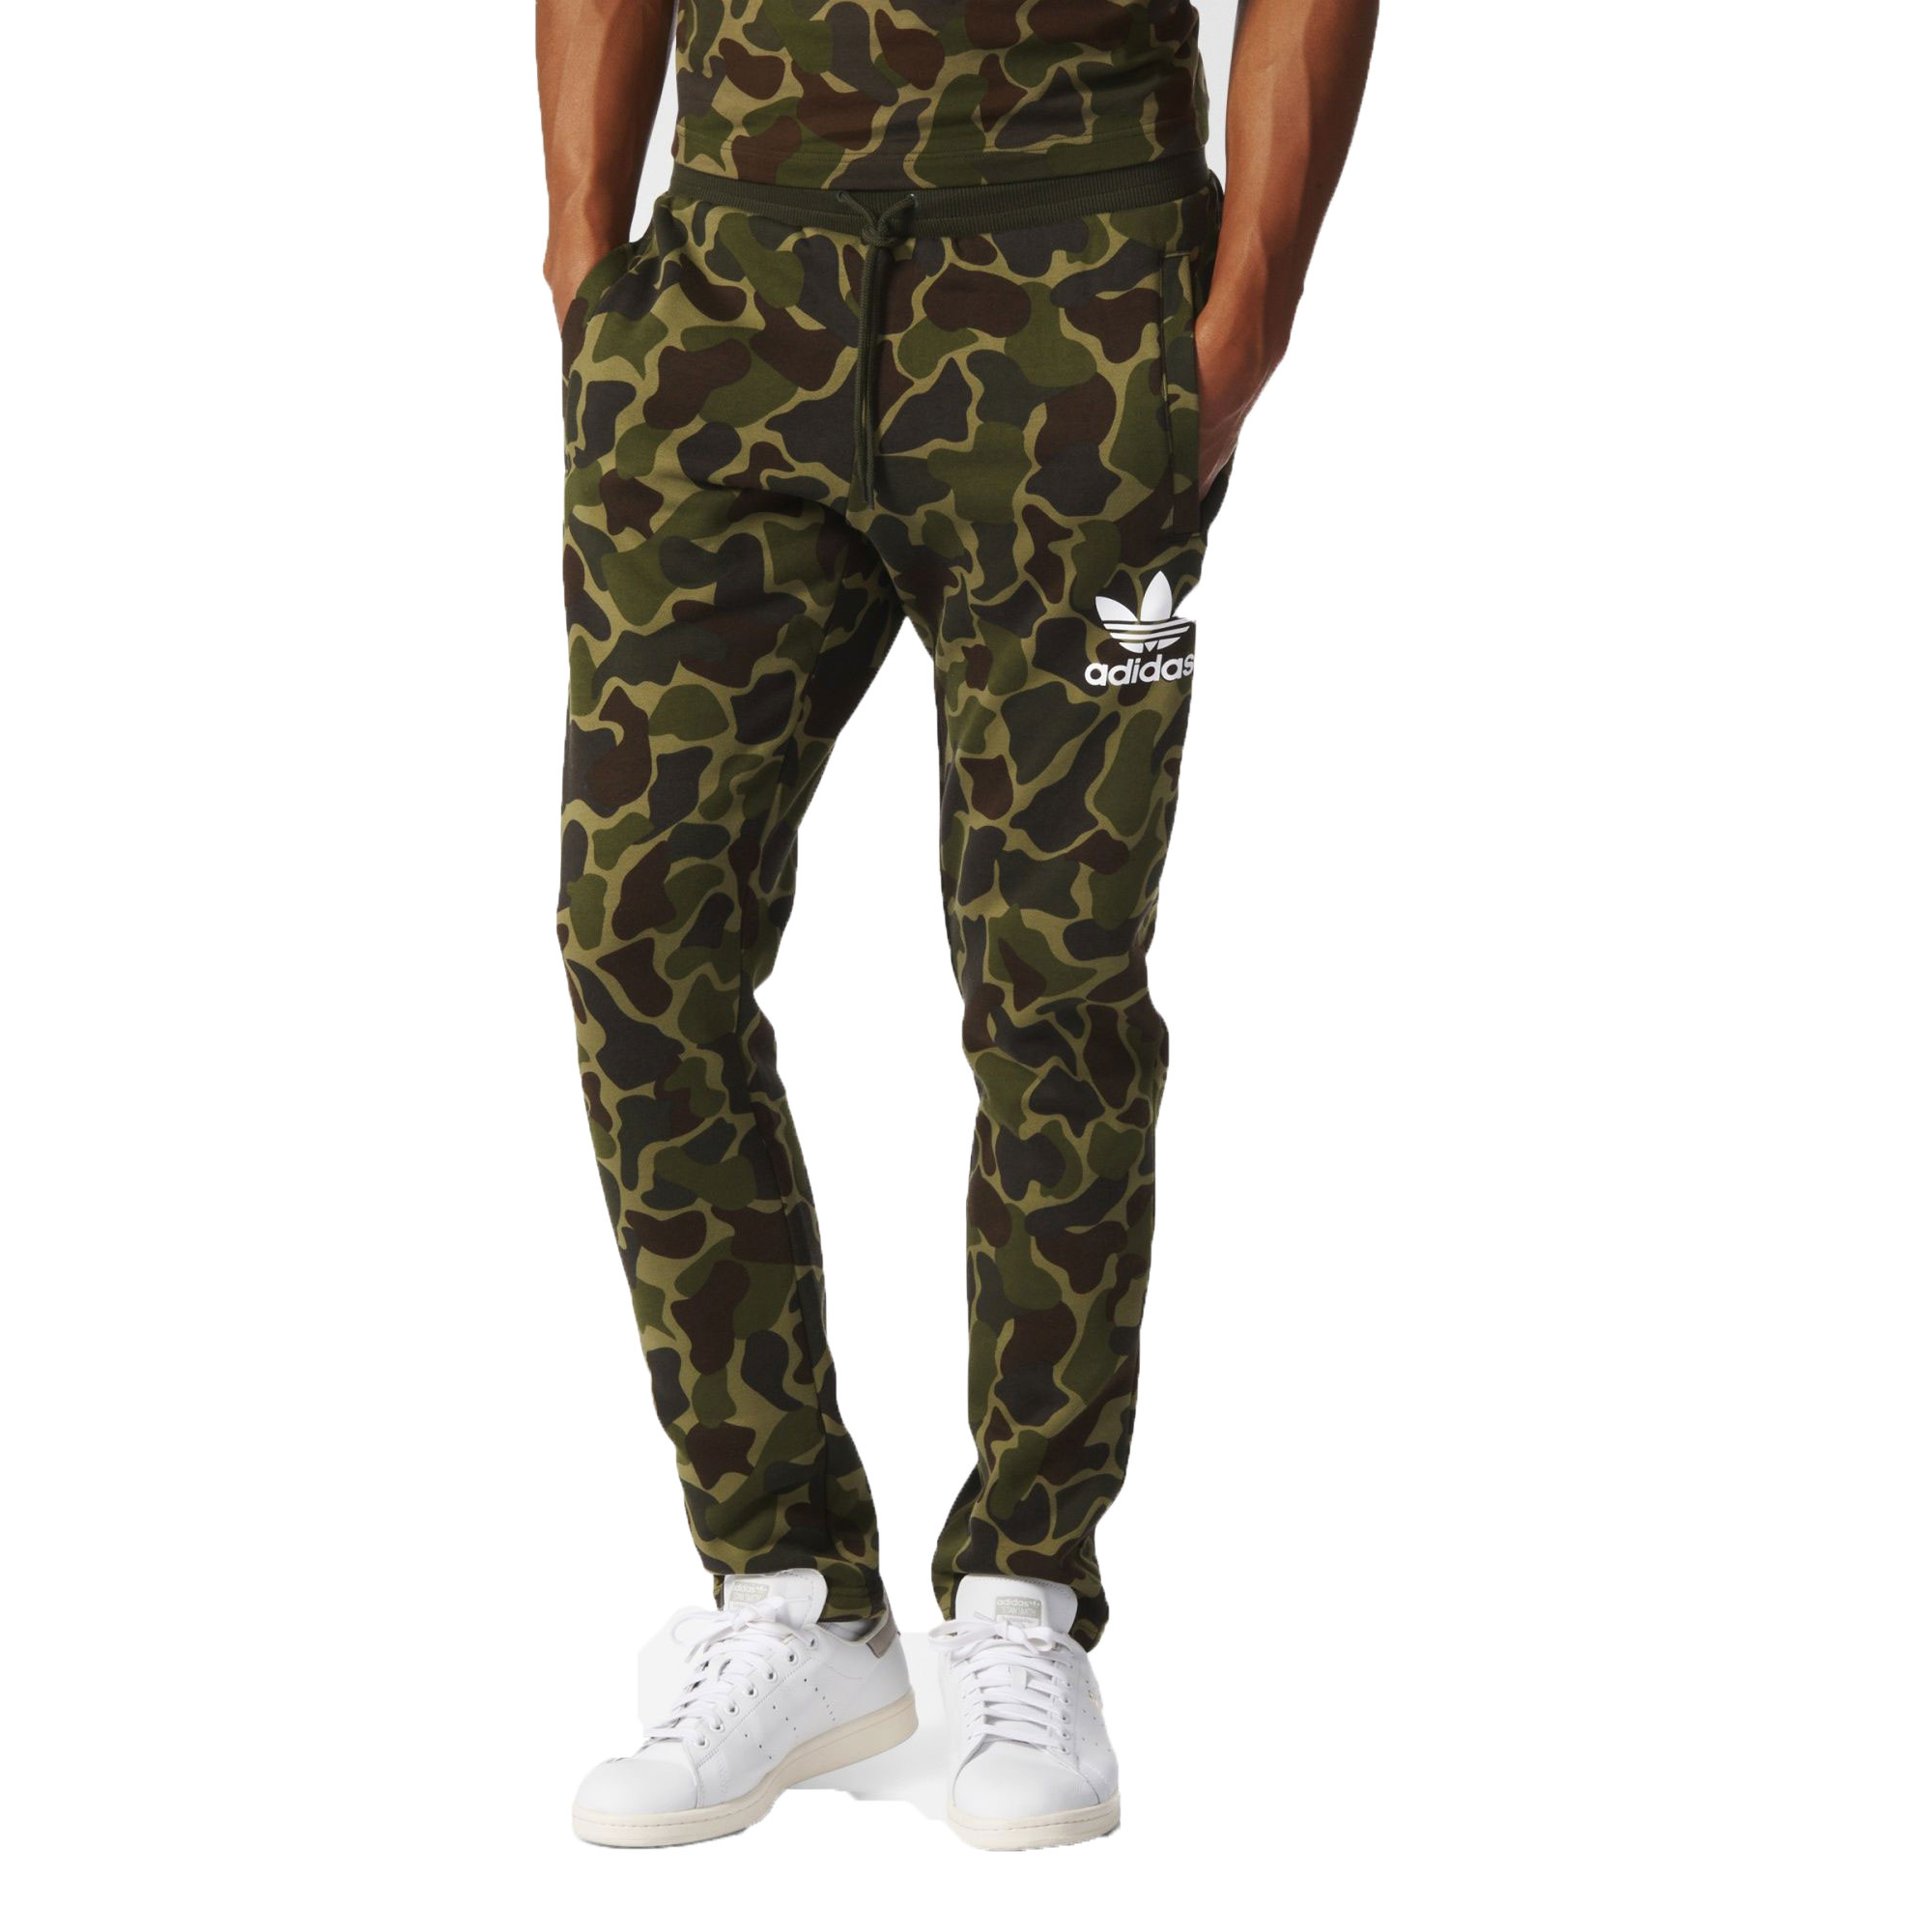 Adidas Originals Camouflage Men's Track Pants Multicolor bk5901